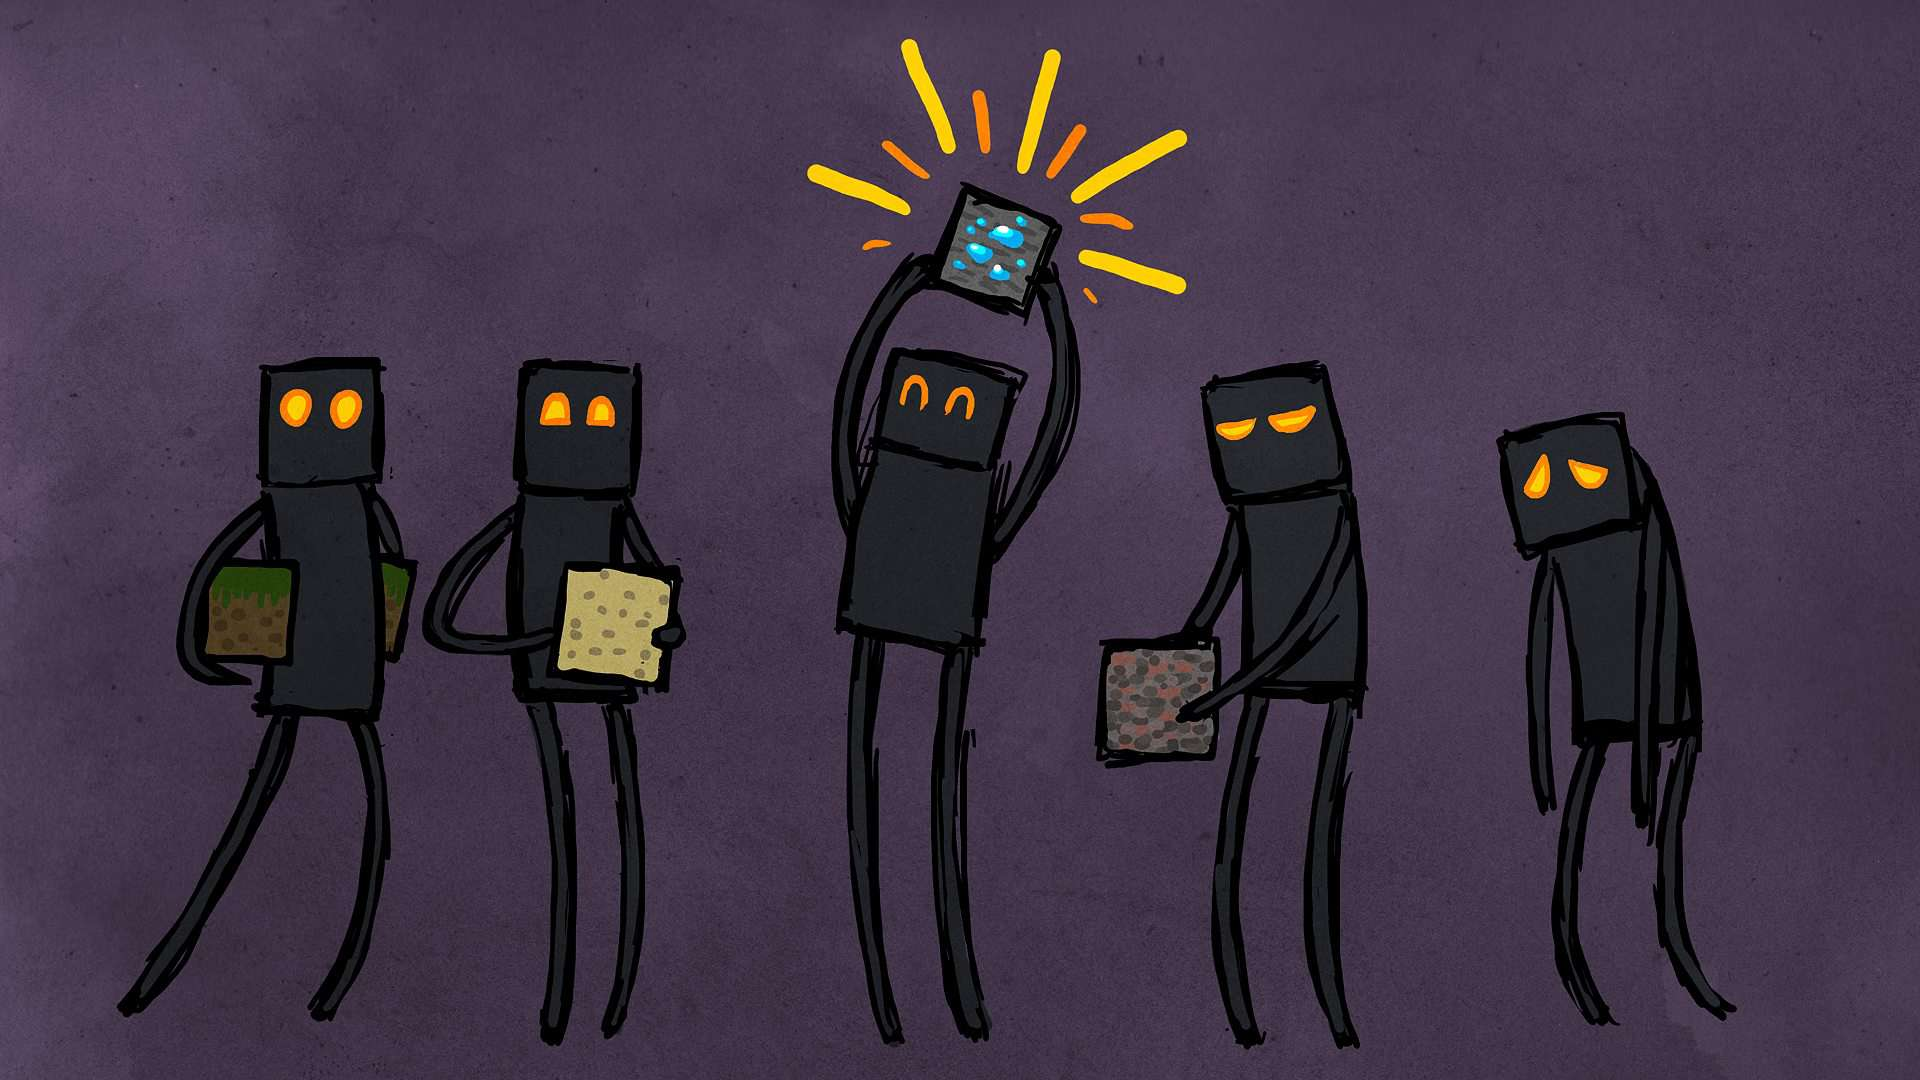 minecraft___endermen_by_malliya-d41sp8g